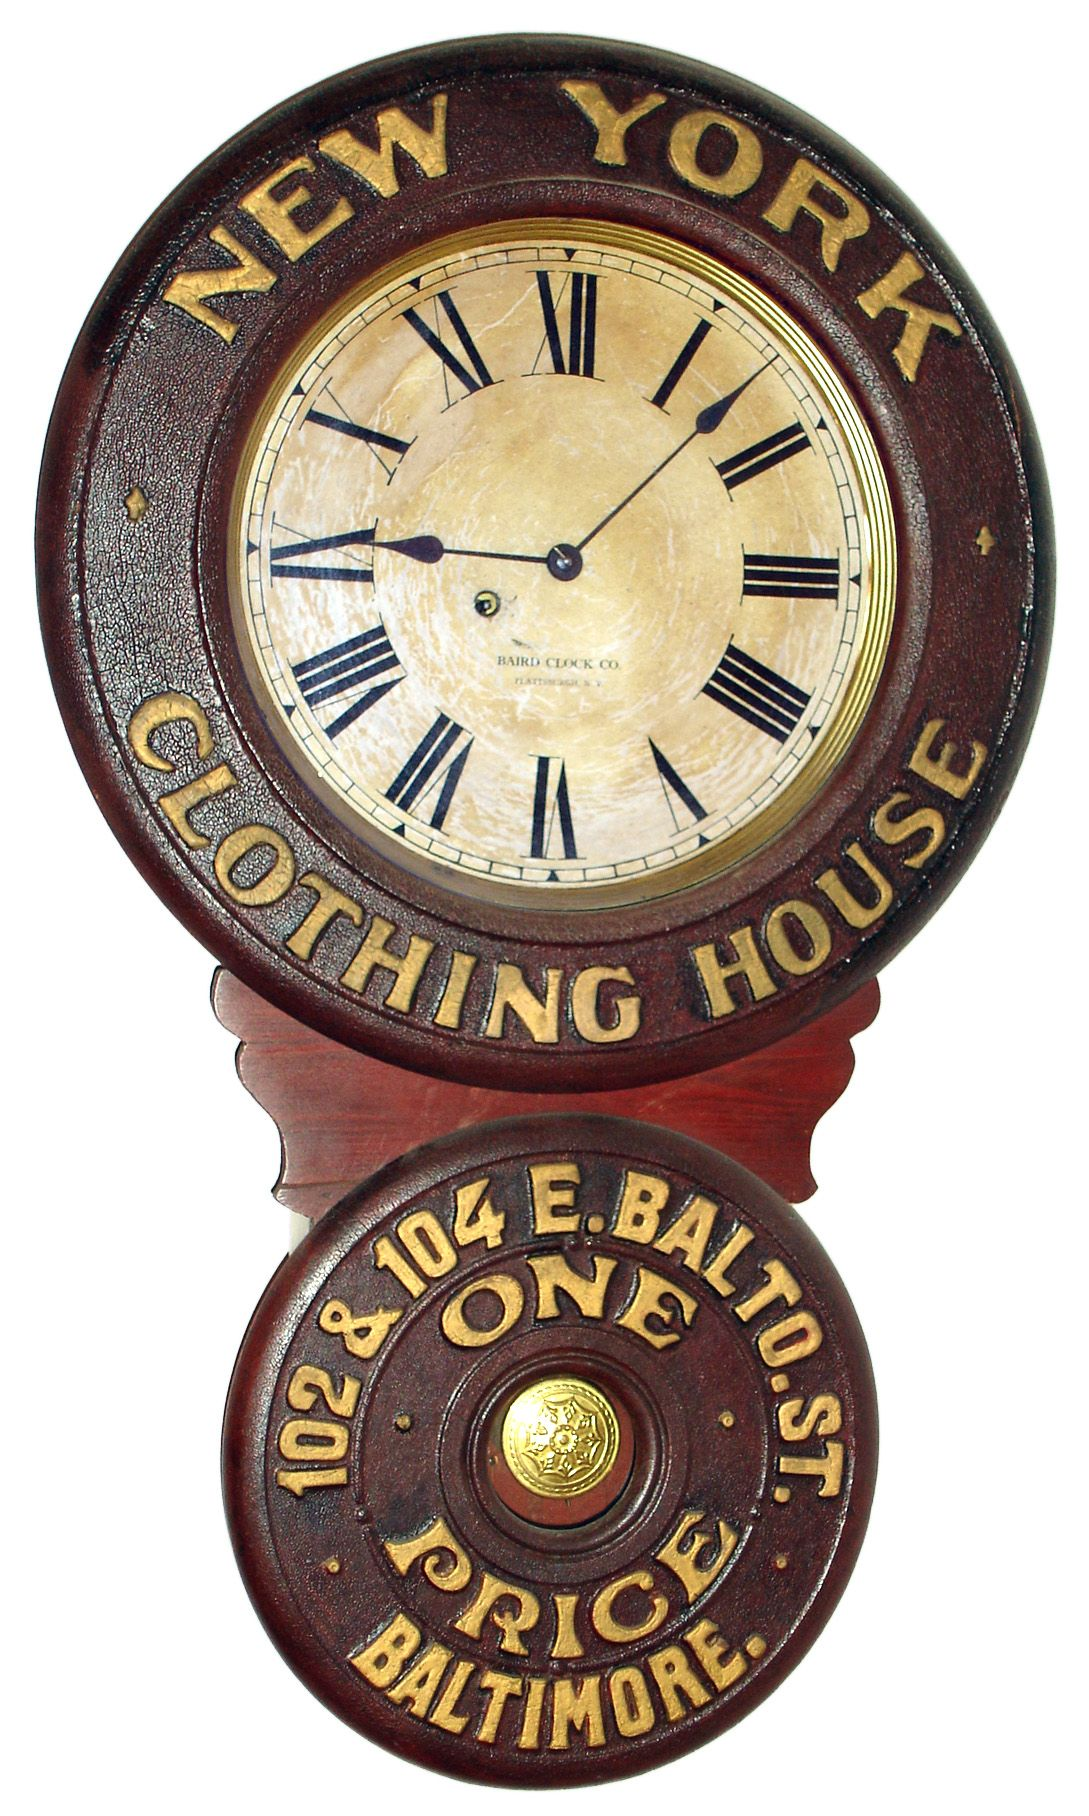 Cool Cuckoo Clocks Antique Clock Details Antique American Clocks Clock